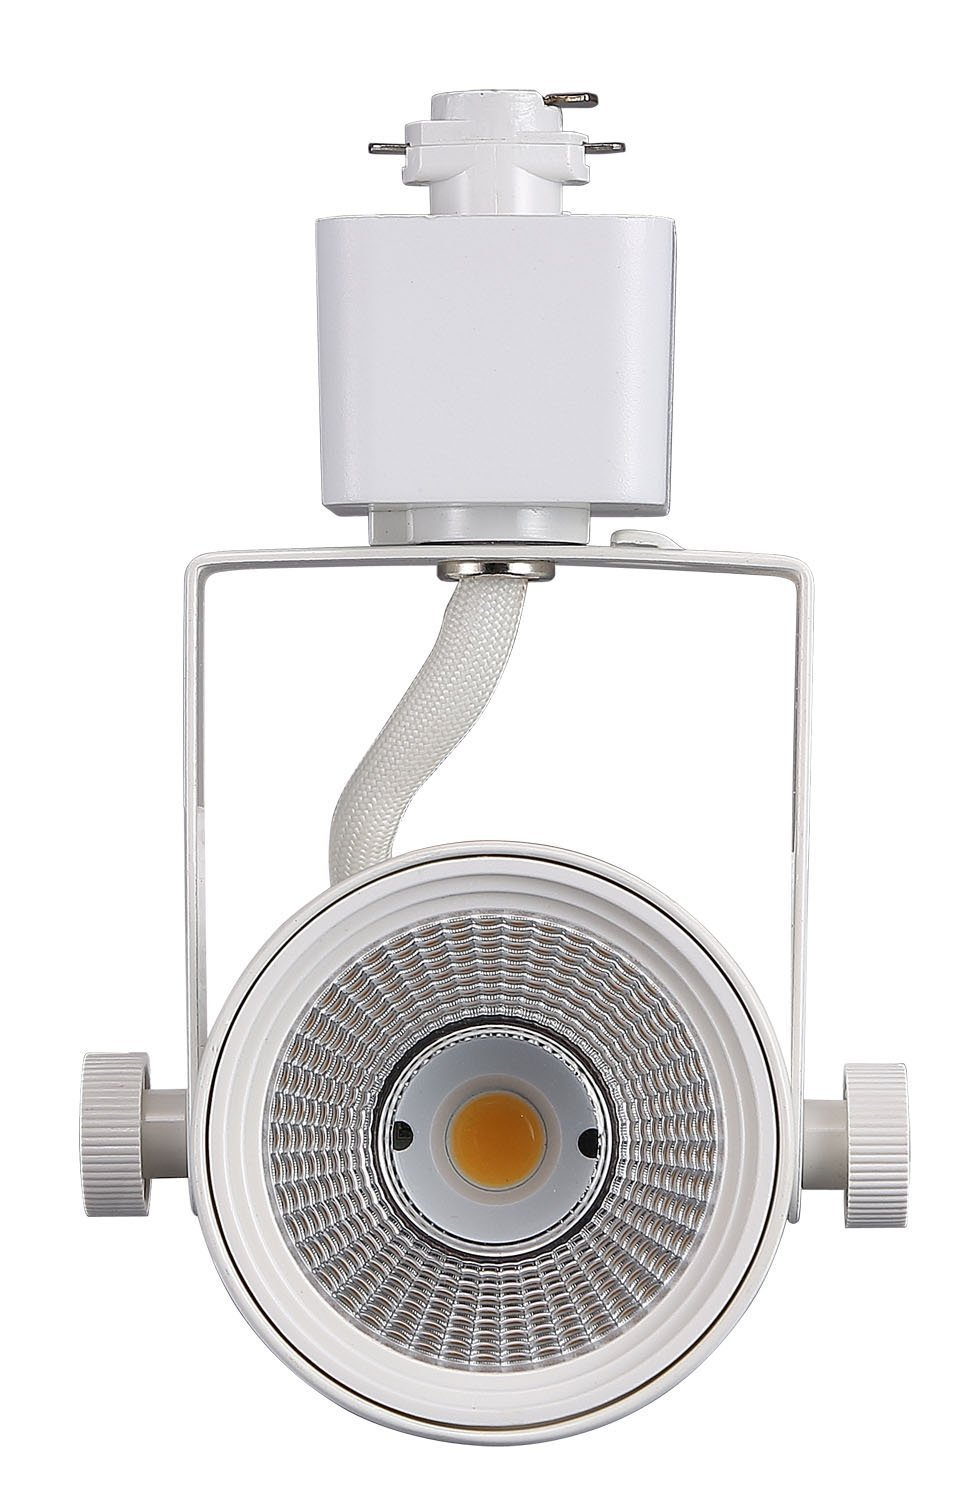 Cloudy Bay LED Track Light Head,CRI90+ Warm White Dimmable,Adjustable Tilt Angle Track Lighting Fixture,8W 40° Angle for Accent Retail,White Finish,Halo Type